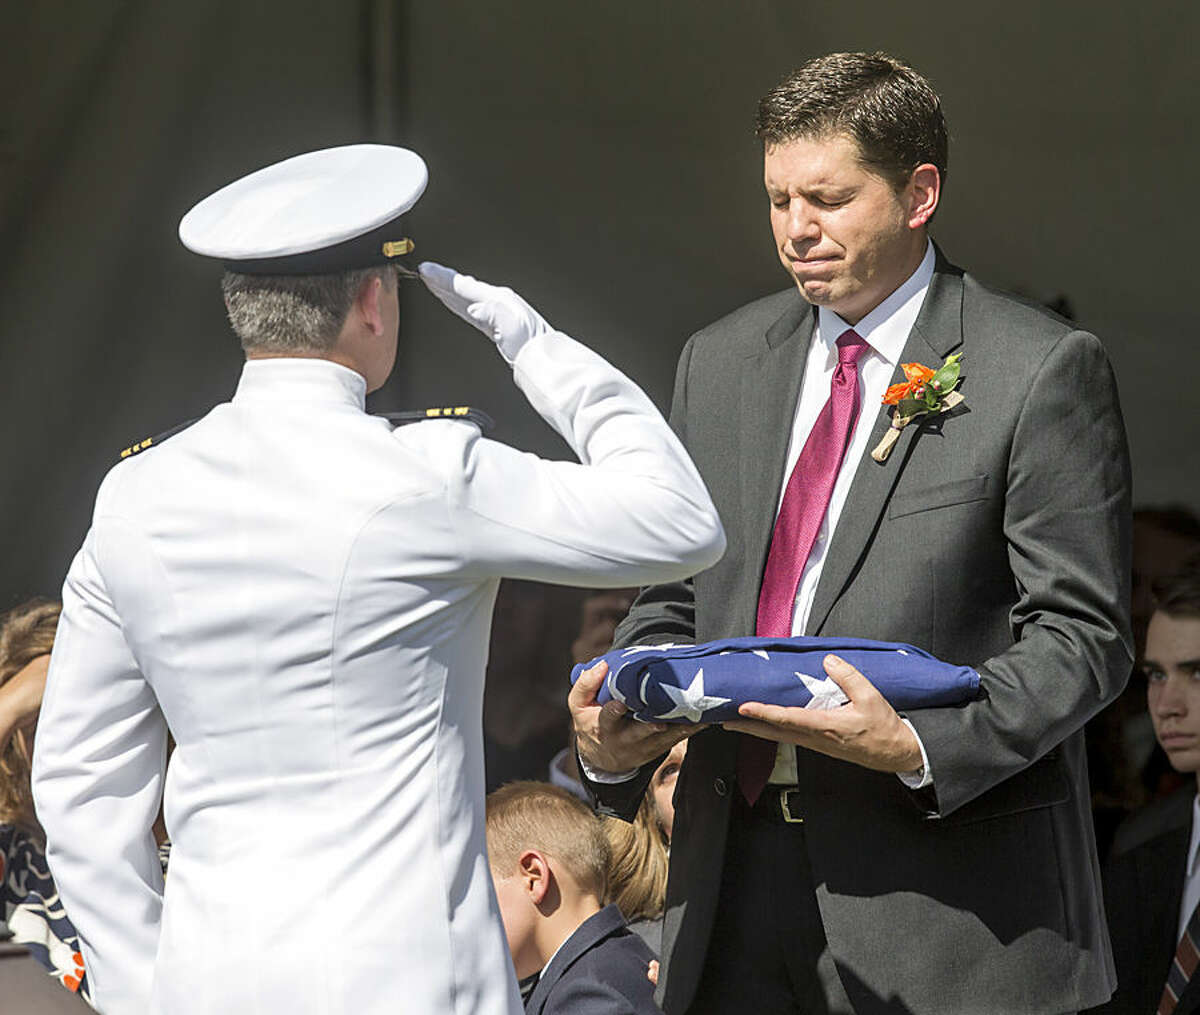 Lt. Cmdr. Johnathan Liddle salutes Michael W. Scott after presenting him with the flag during funeral services for Mormon leader Richard G. Scott in Salt Lake City, Monday, Sept. 28, 2015. Scott died Sept. 22 from natural causes at the age of 86. (Scott G Winterton/The Deseret News via AP) SALT LAKE TRIBUNE OUT; MAGS OUT; MANDATORY CREDIT; TV OUT